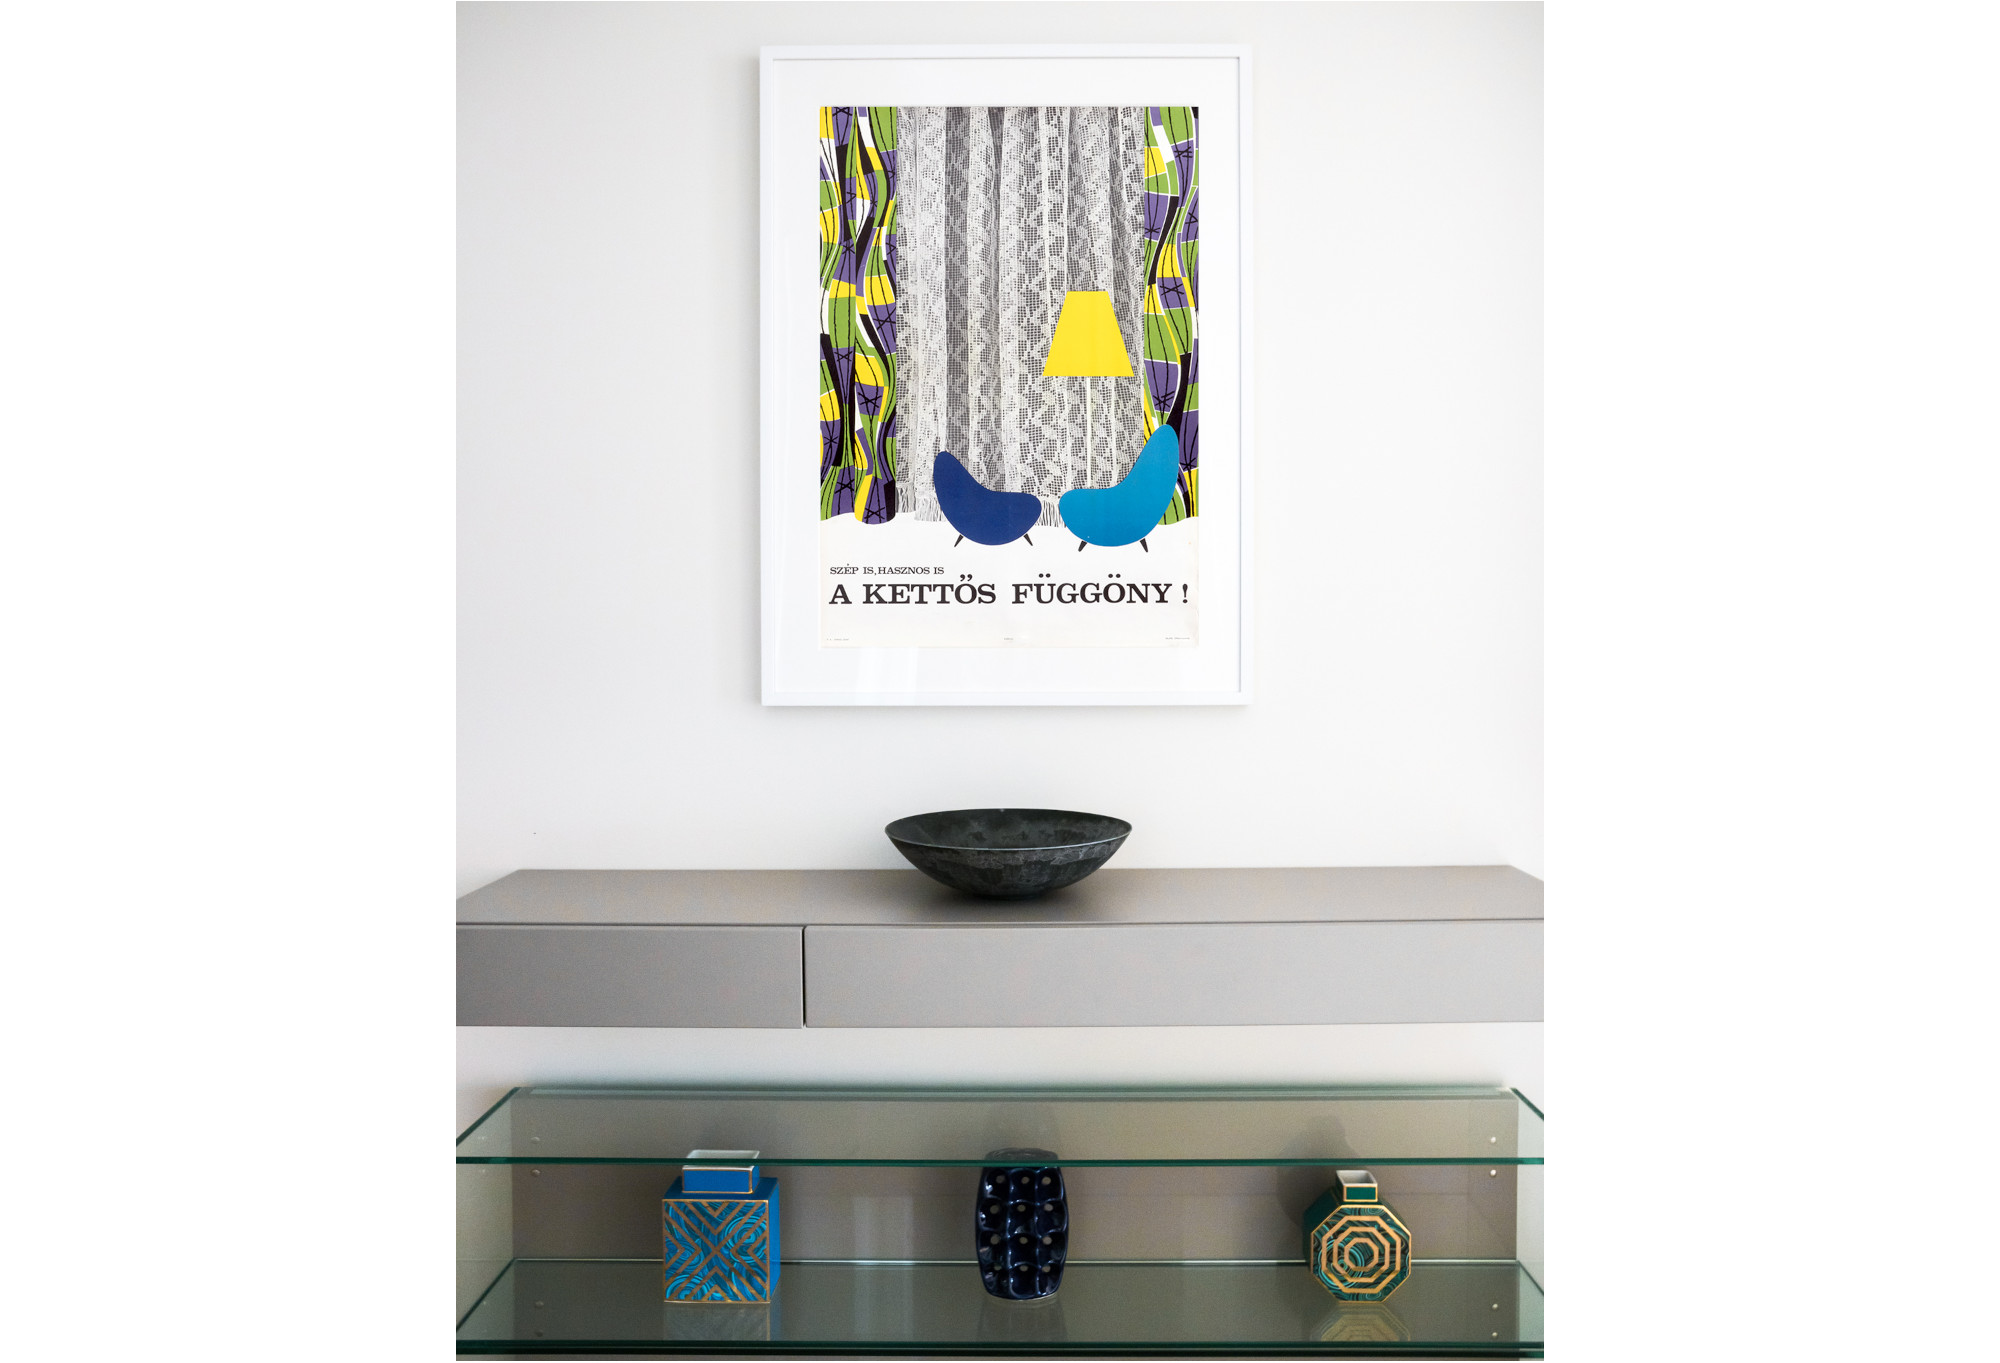 photograph of mid-century modern poster featuring chairs and curtain above decorative bowls and vases; white, grey, blue, purple, yellow, green